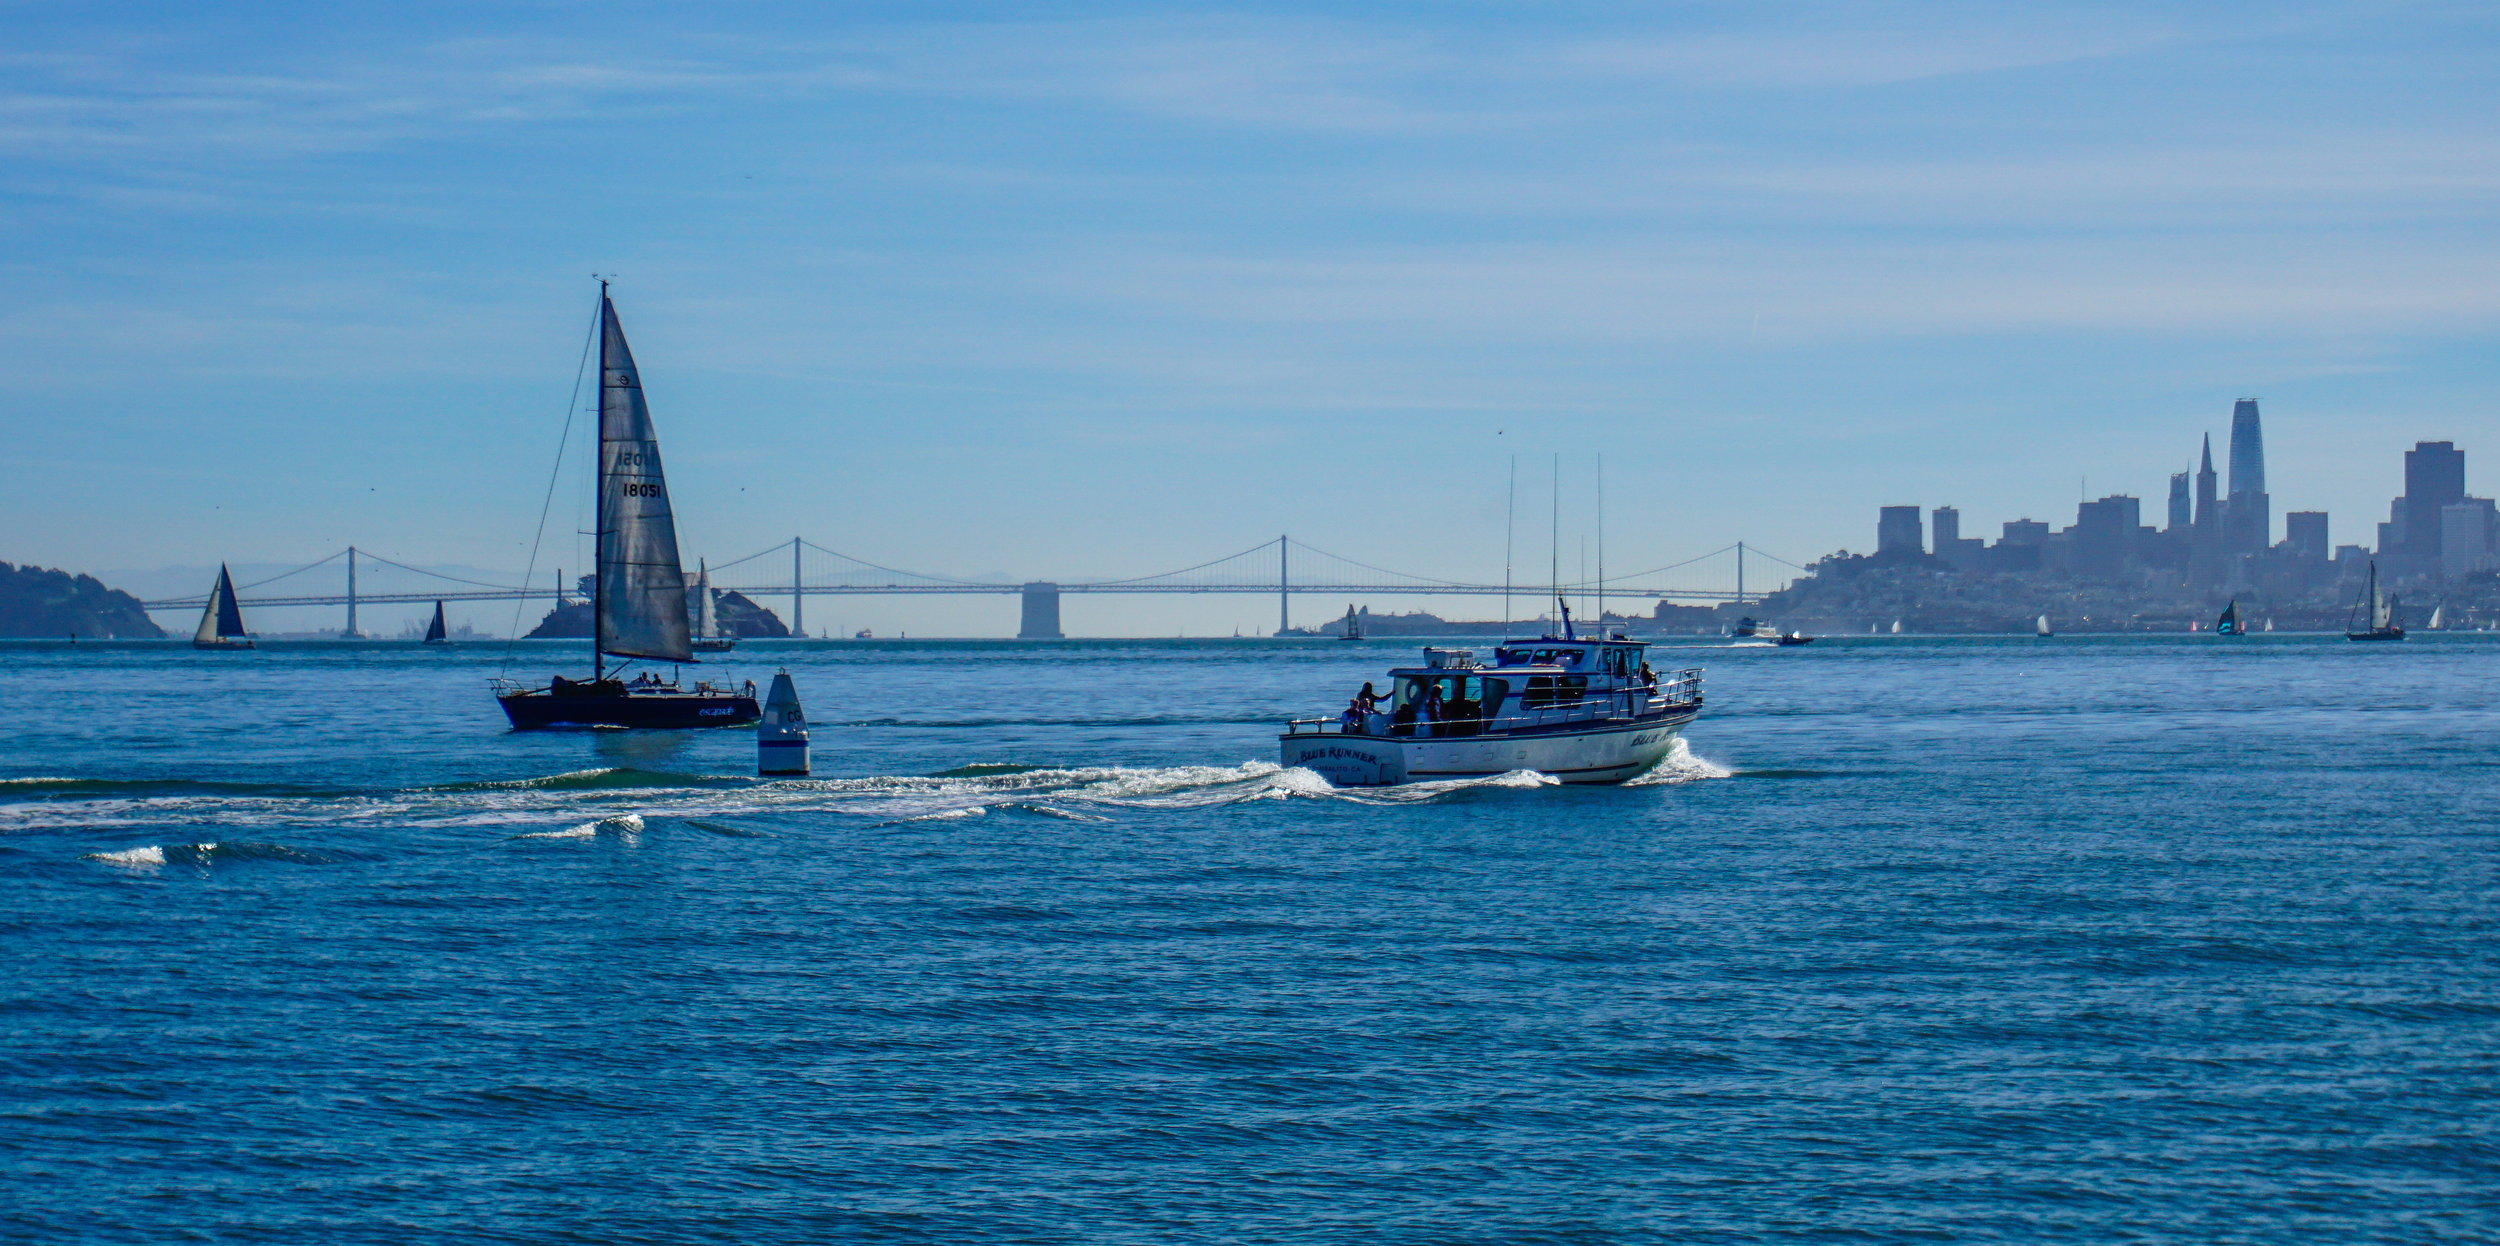 San Francisco, you're just as pretty from the water as you are on land.